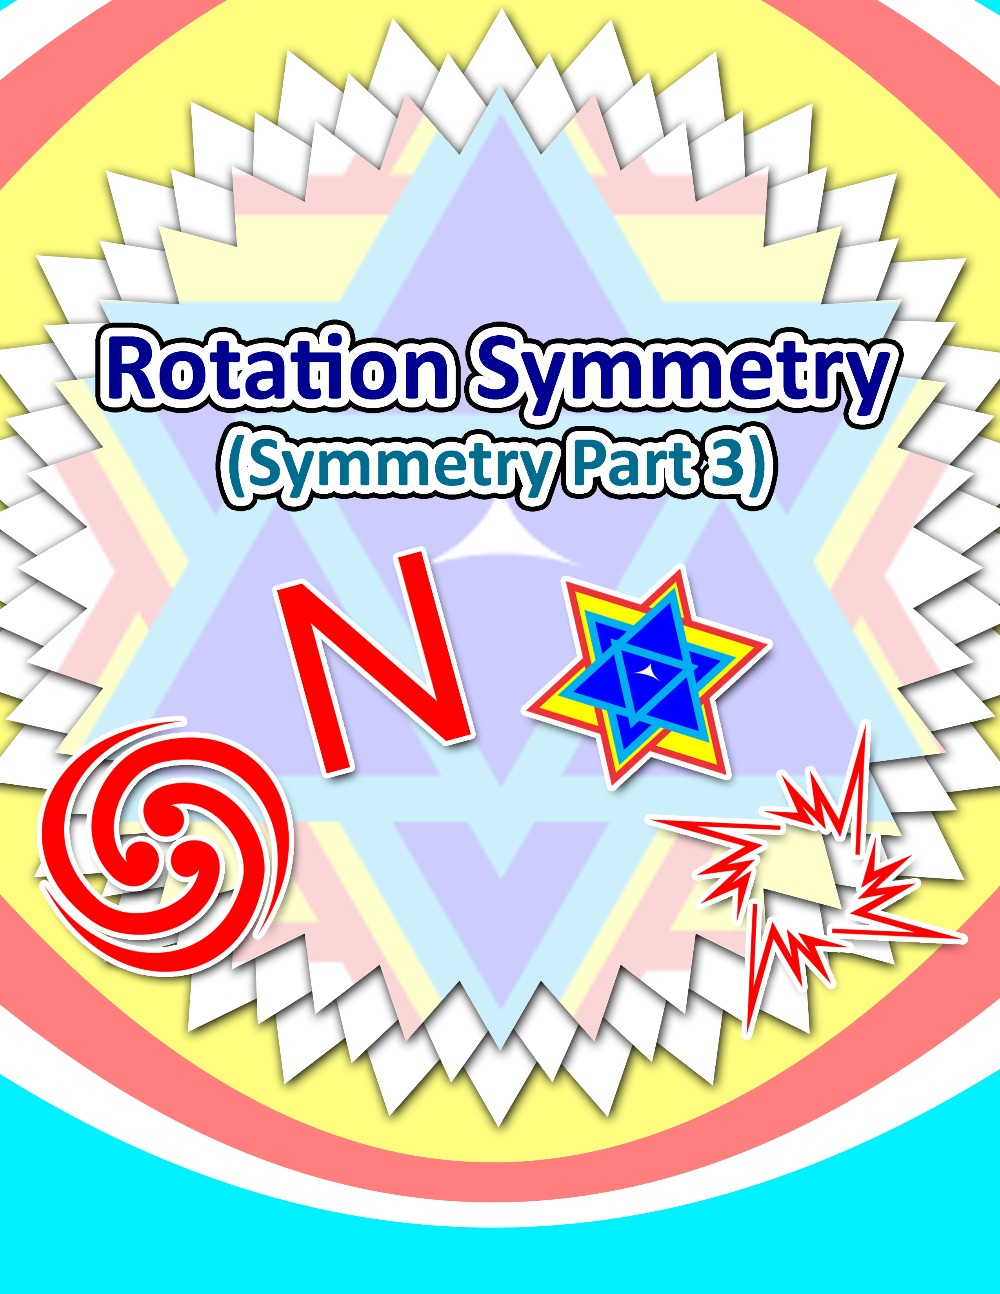 Rotation Symmetry (Symmetry Part 3)